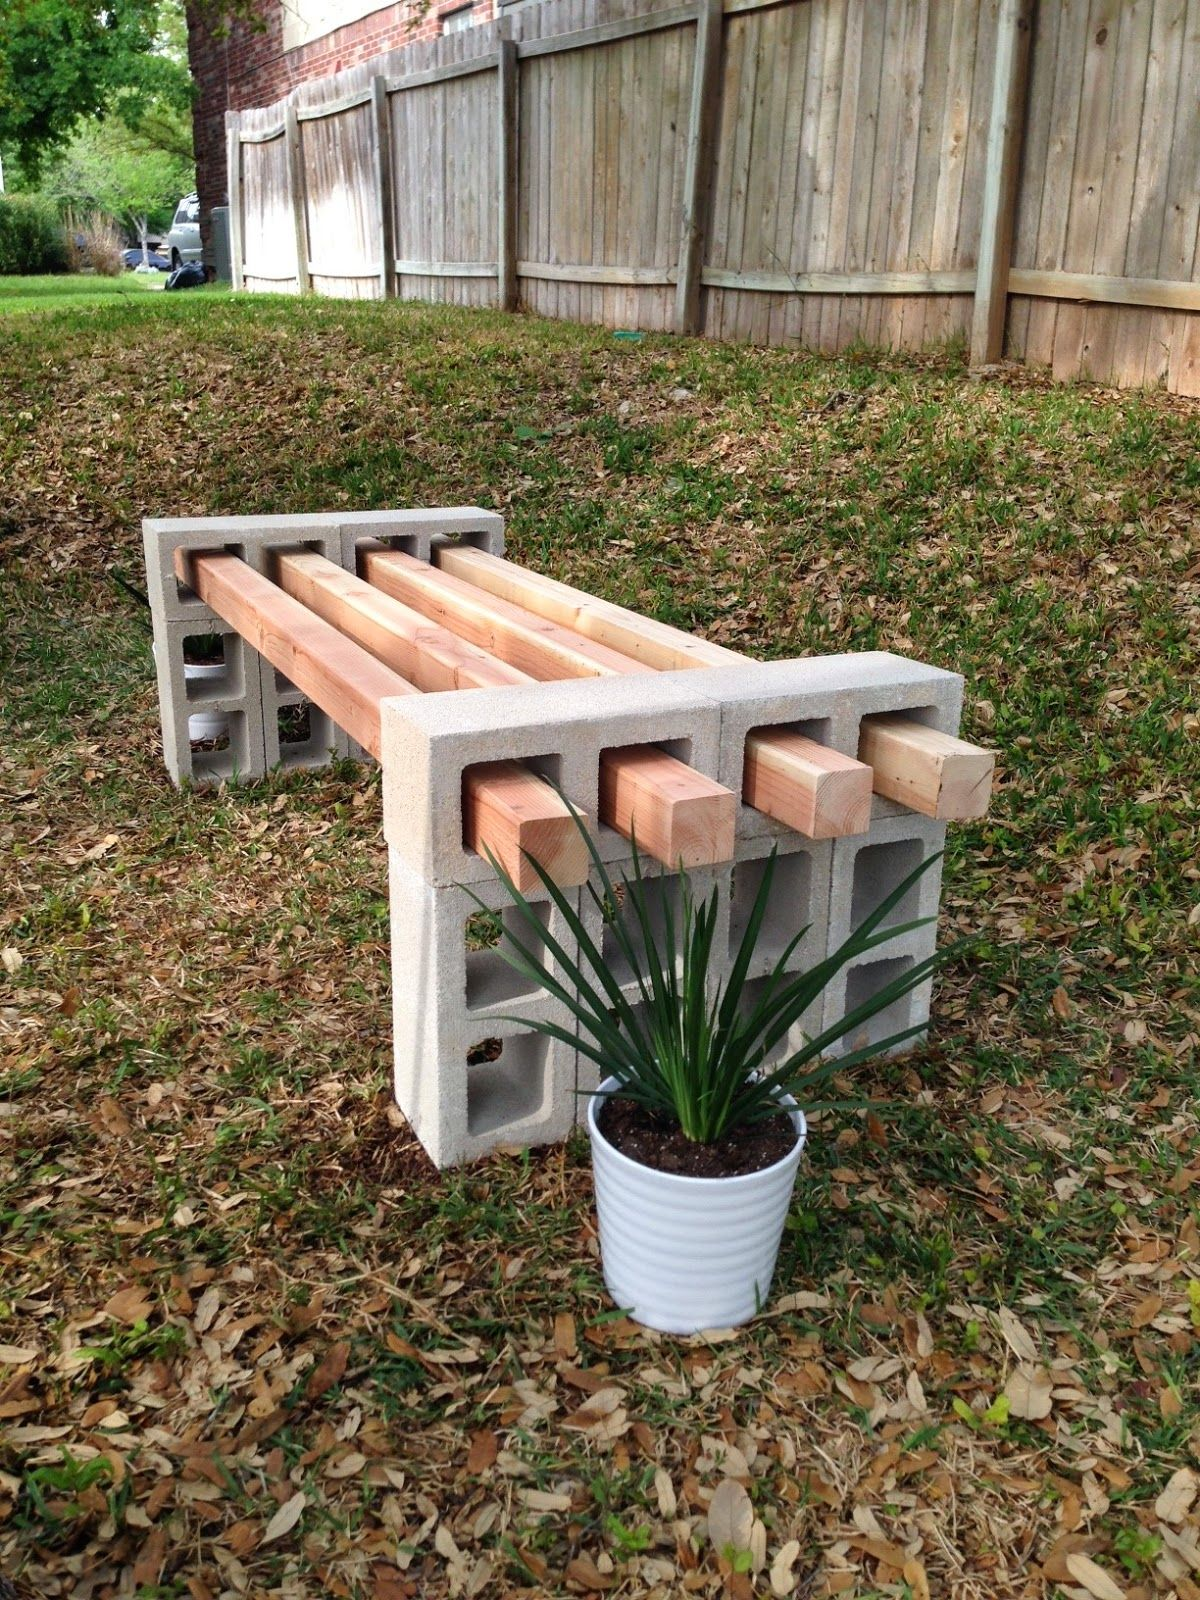 Diy patio furniture cinder blocks - Cinder Block Bench 19 Backyard Diy Spruce Ups On A Budget